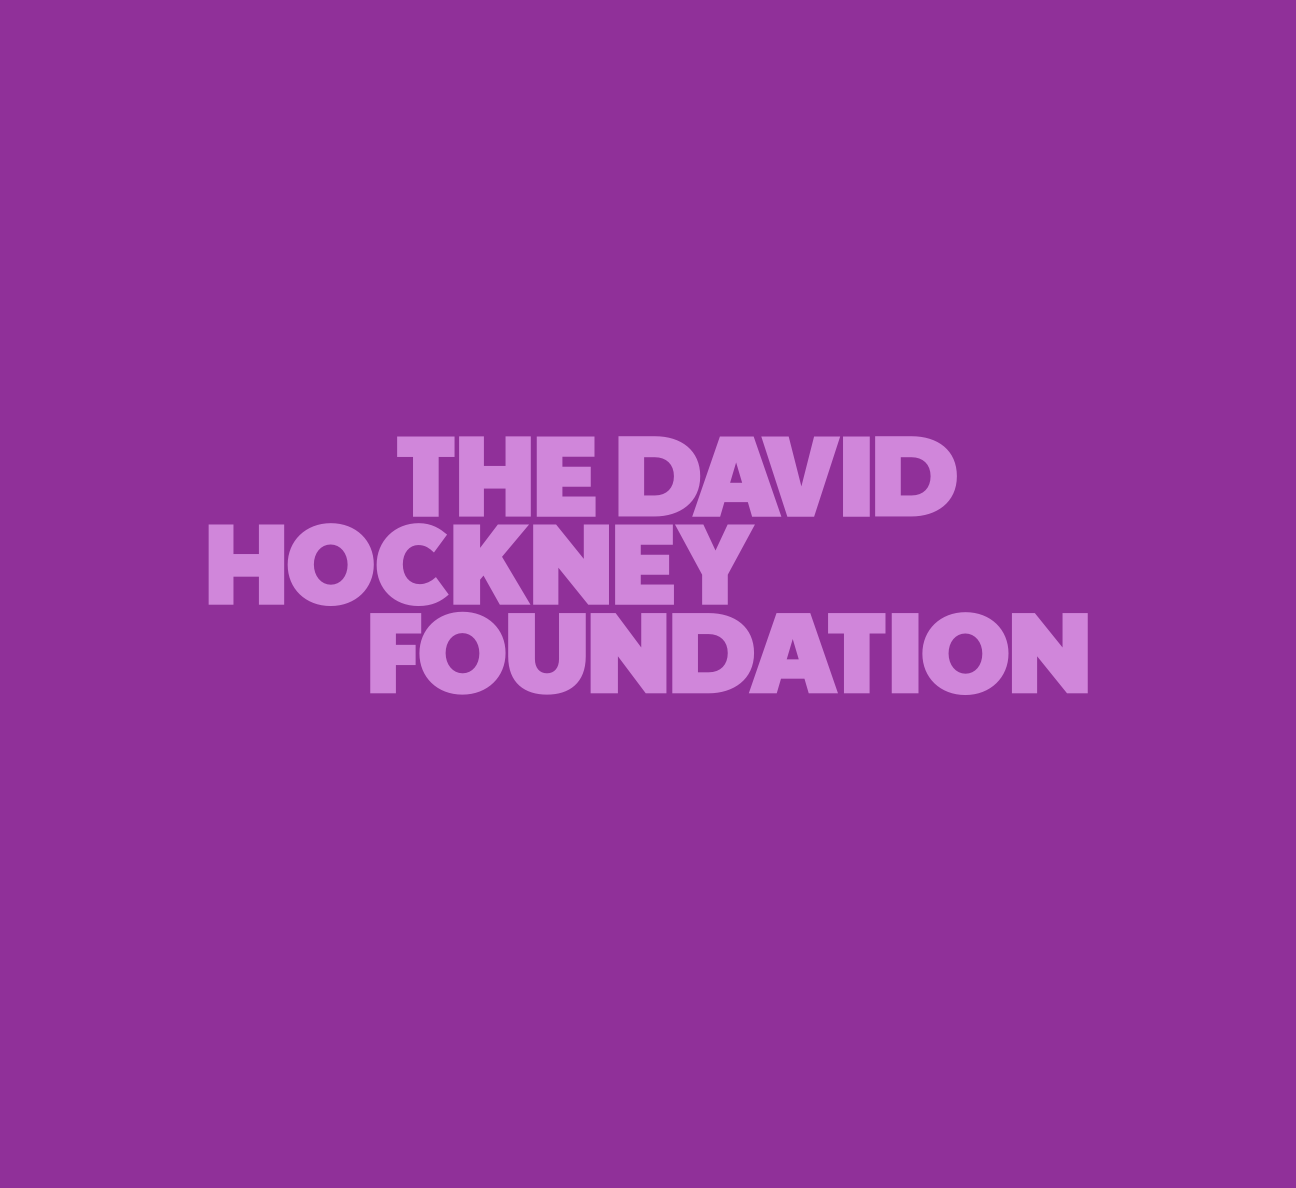 The David Hockney Foundation Case Study